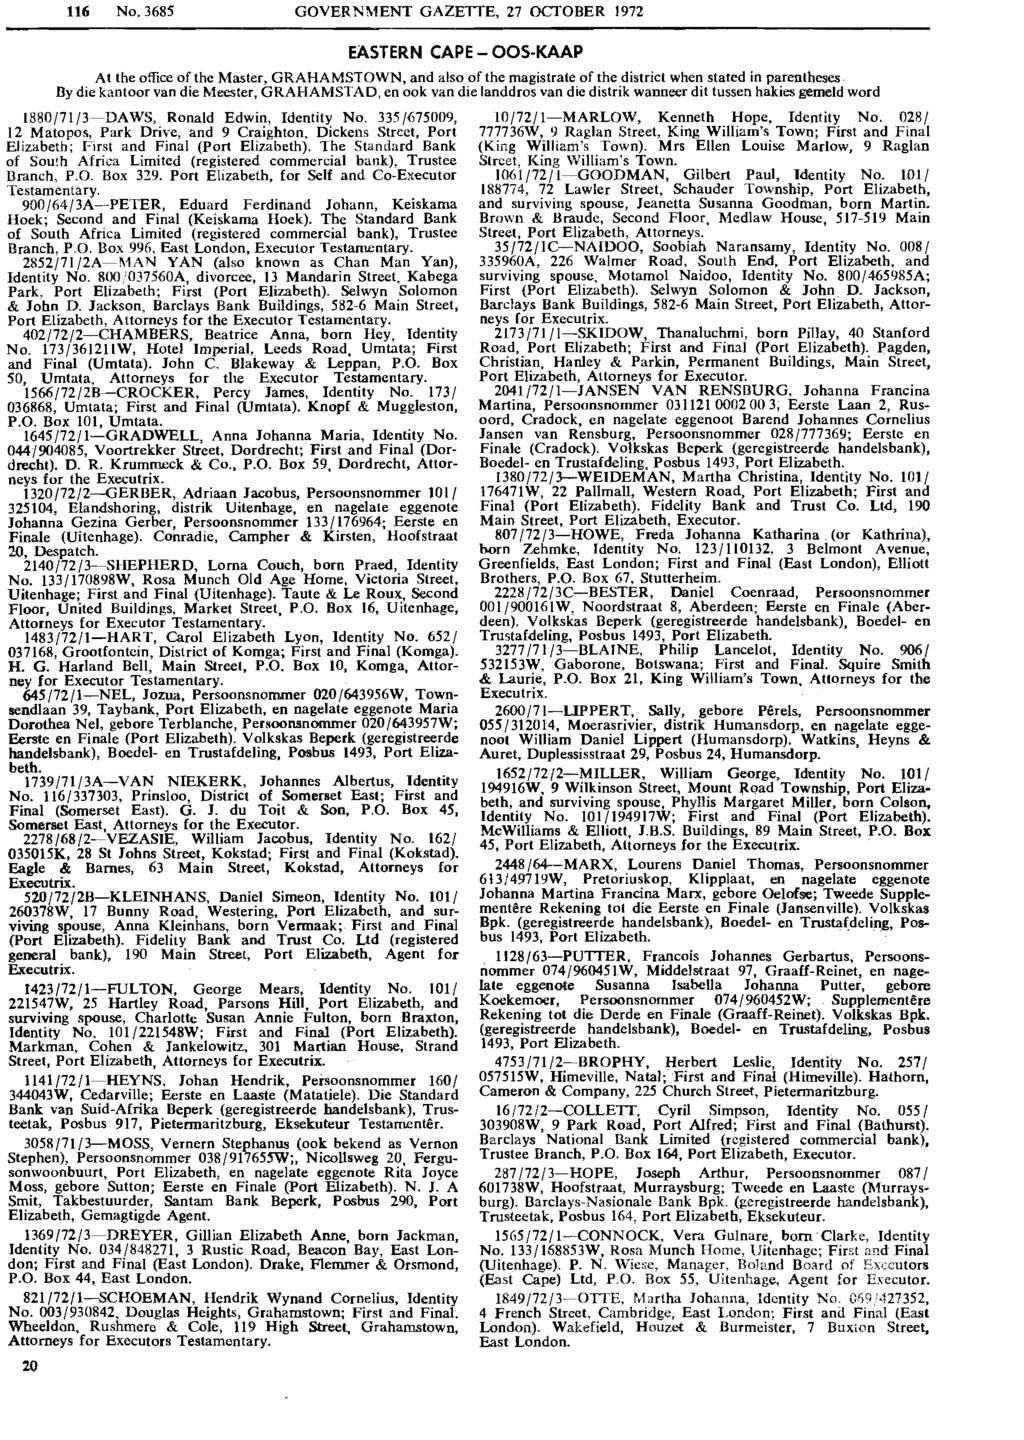 116 No. 3685 GOVERNMENT GAZETTE, 27 OCTOBER 1972 EASTERN CAPE - OOS-KAAP At the office of the Master, GRAHAMSTOWN, and also of the magistrate of the district when stated in parentheses.